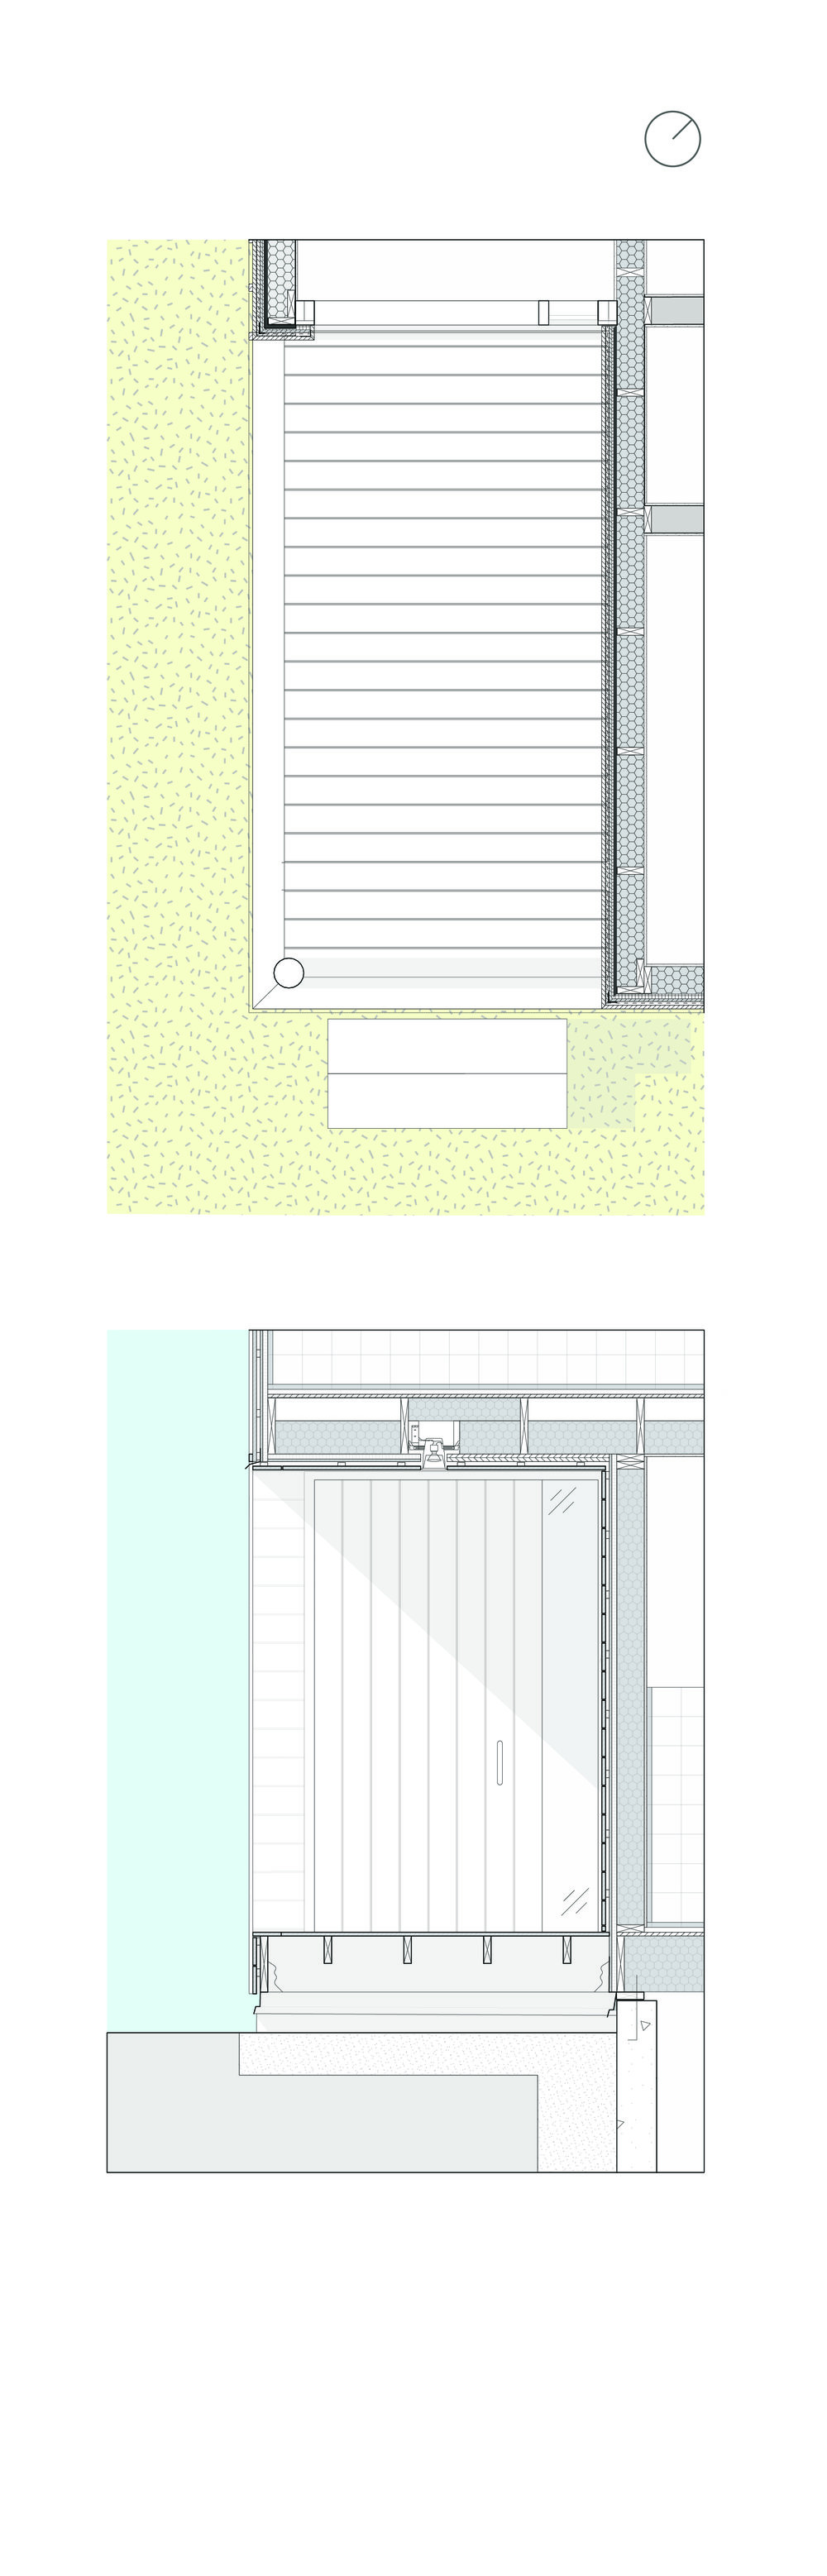 180624_KOZ Entry_Design drawing-03.jpg